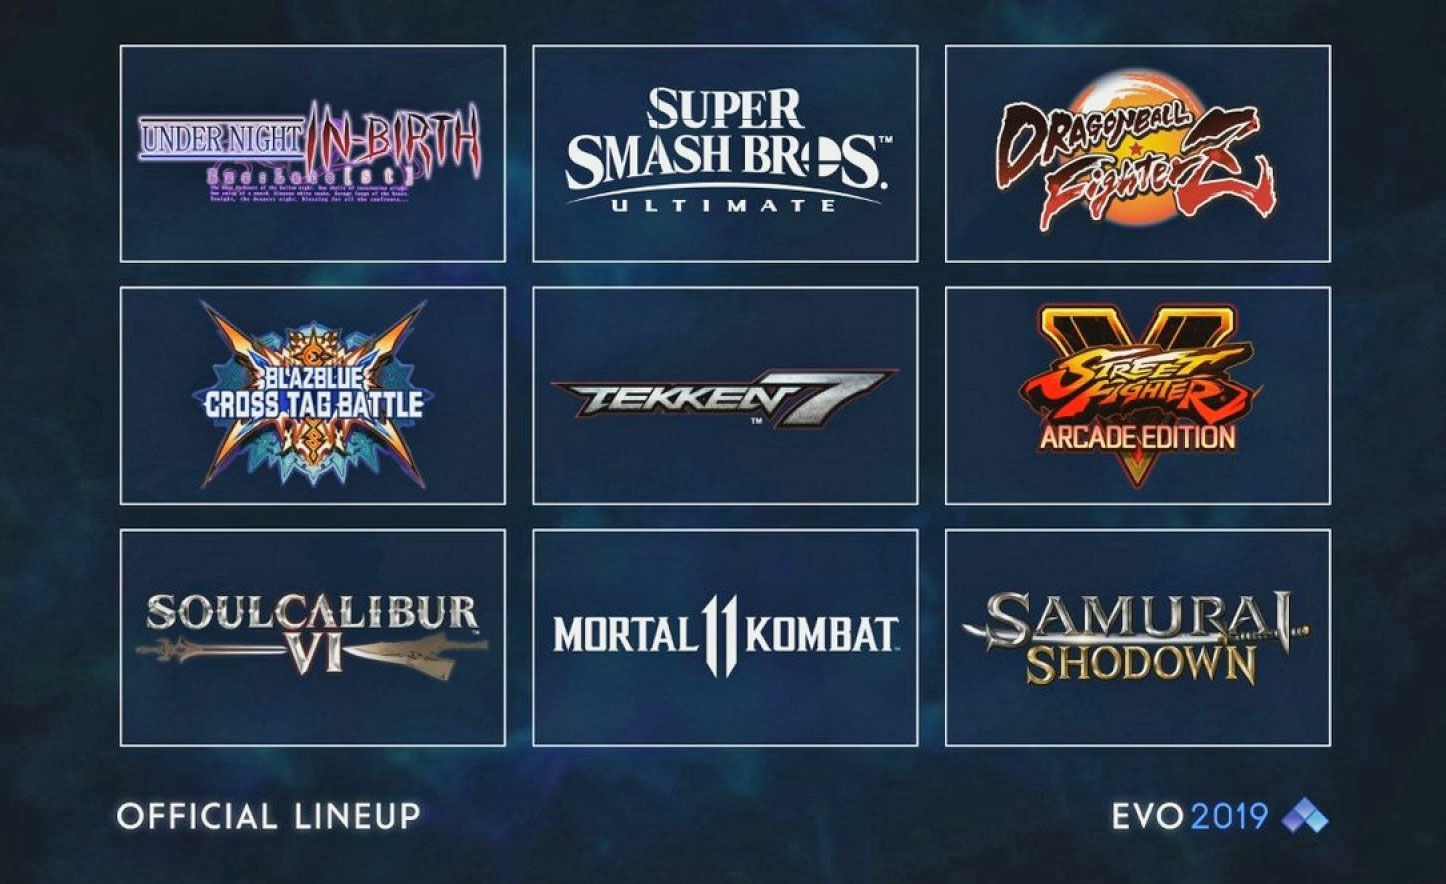 'Super Smash Bros. Ultimate' has replaced 'Melee' at Evo 2019 | DeviceDaily.com